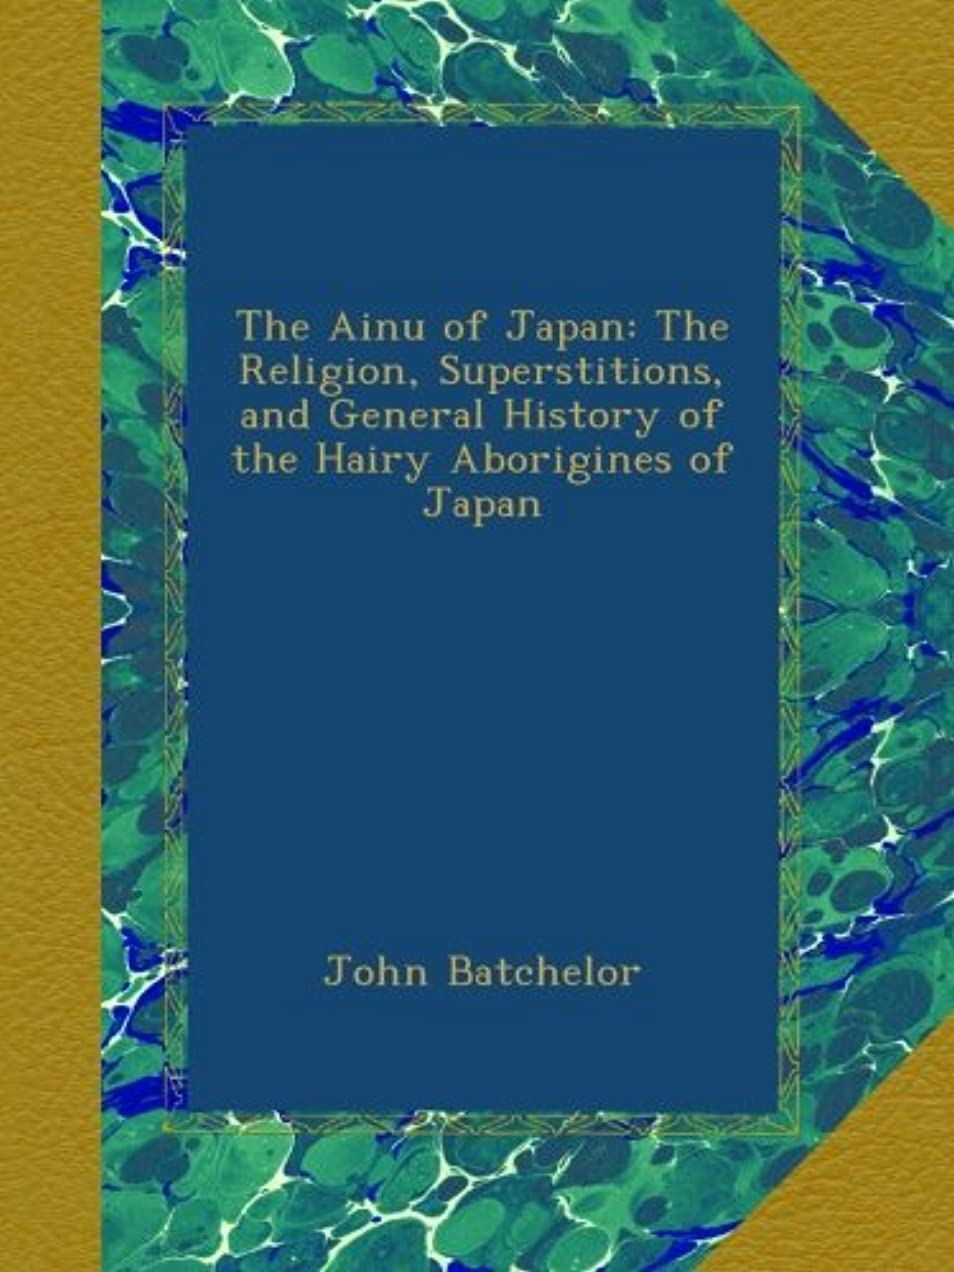 ほんの空港障害者The Ainu of Japan: The Religion, Superstitions, and General History of the Hairy Aborigines of Japan